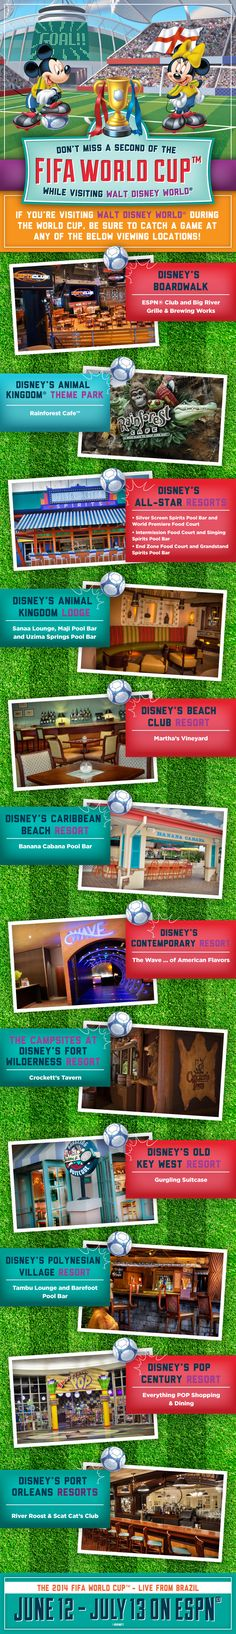 Check out where you can watch the 2014 FIFA World Cup on ESPN during your Walt Disney World vacation! Find more places to watch the World Cup in the USA: http://pin.it/AeGWA1a